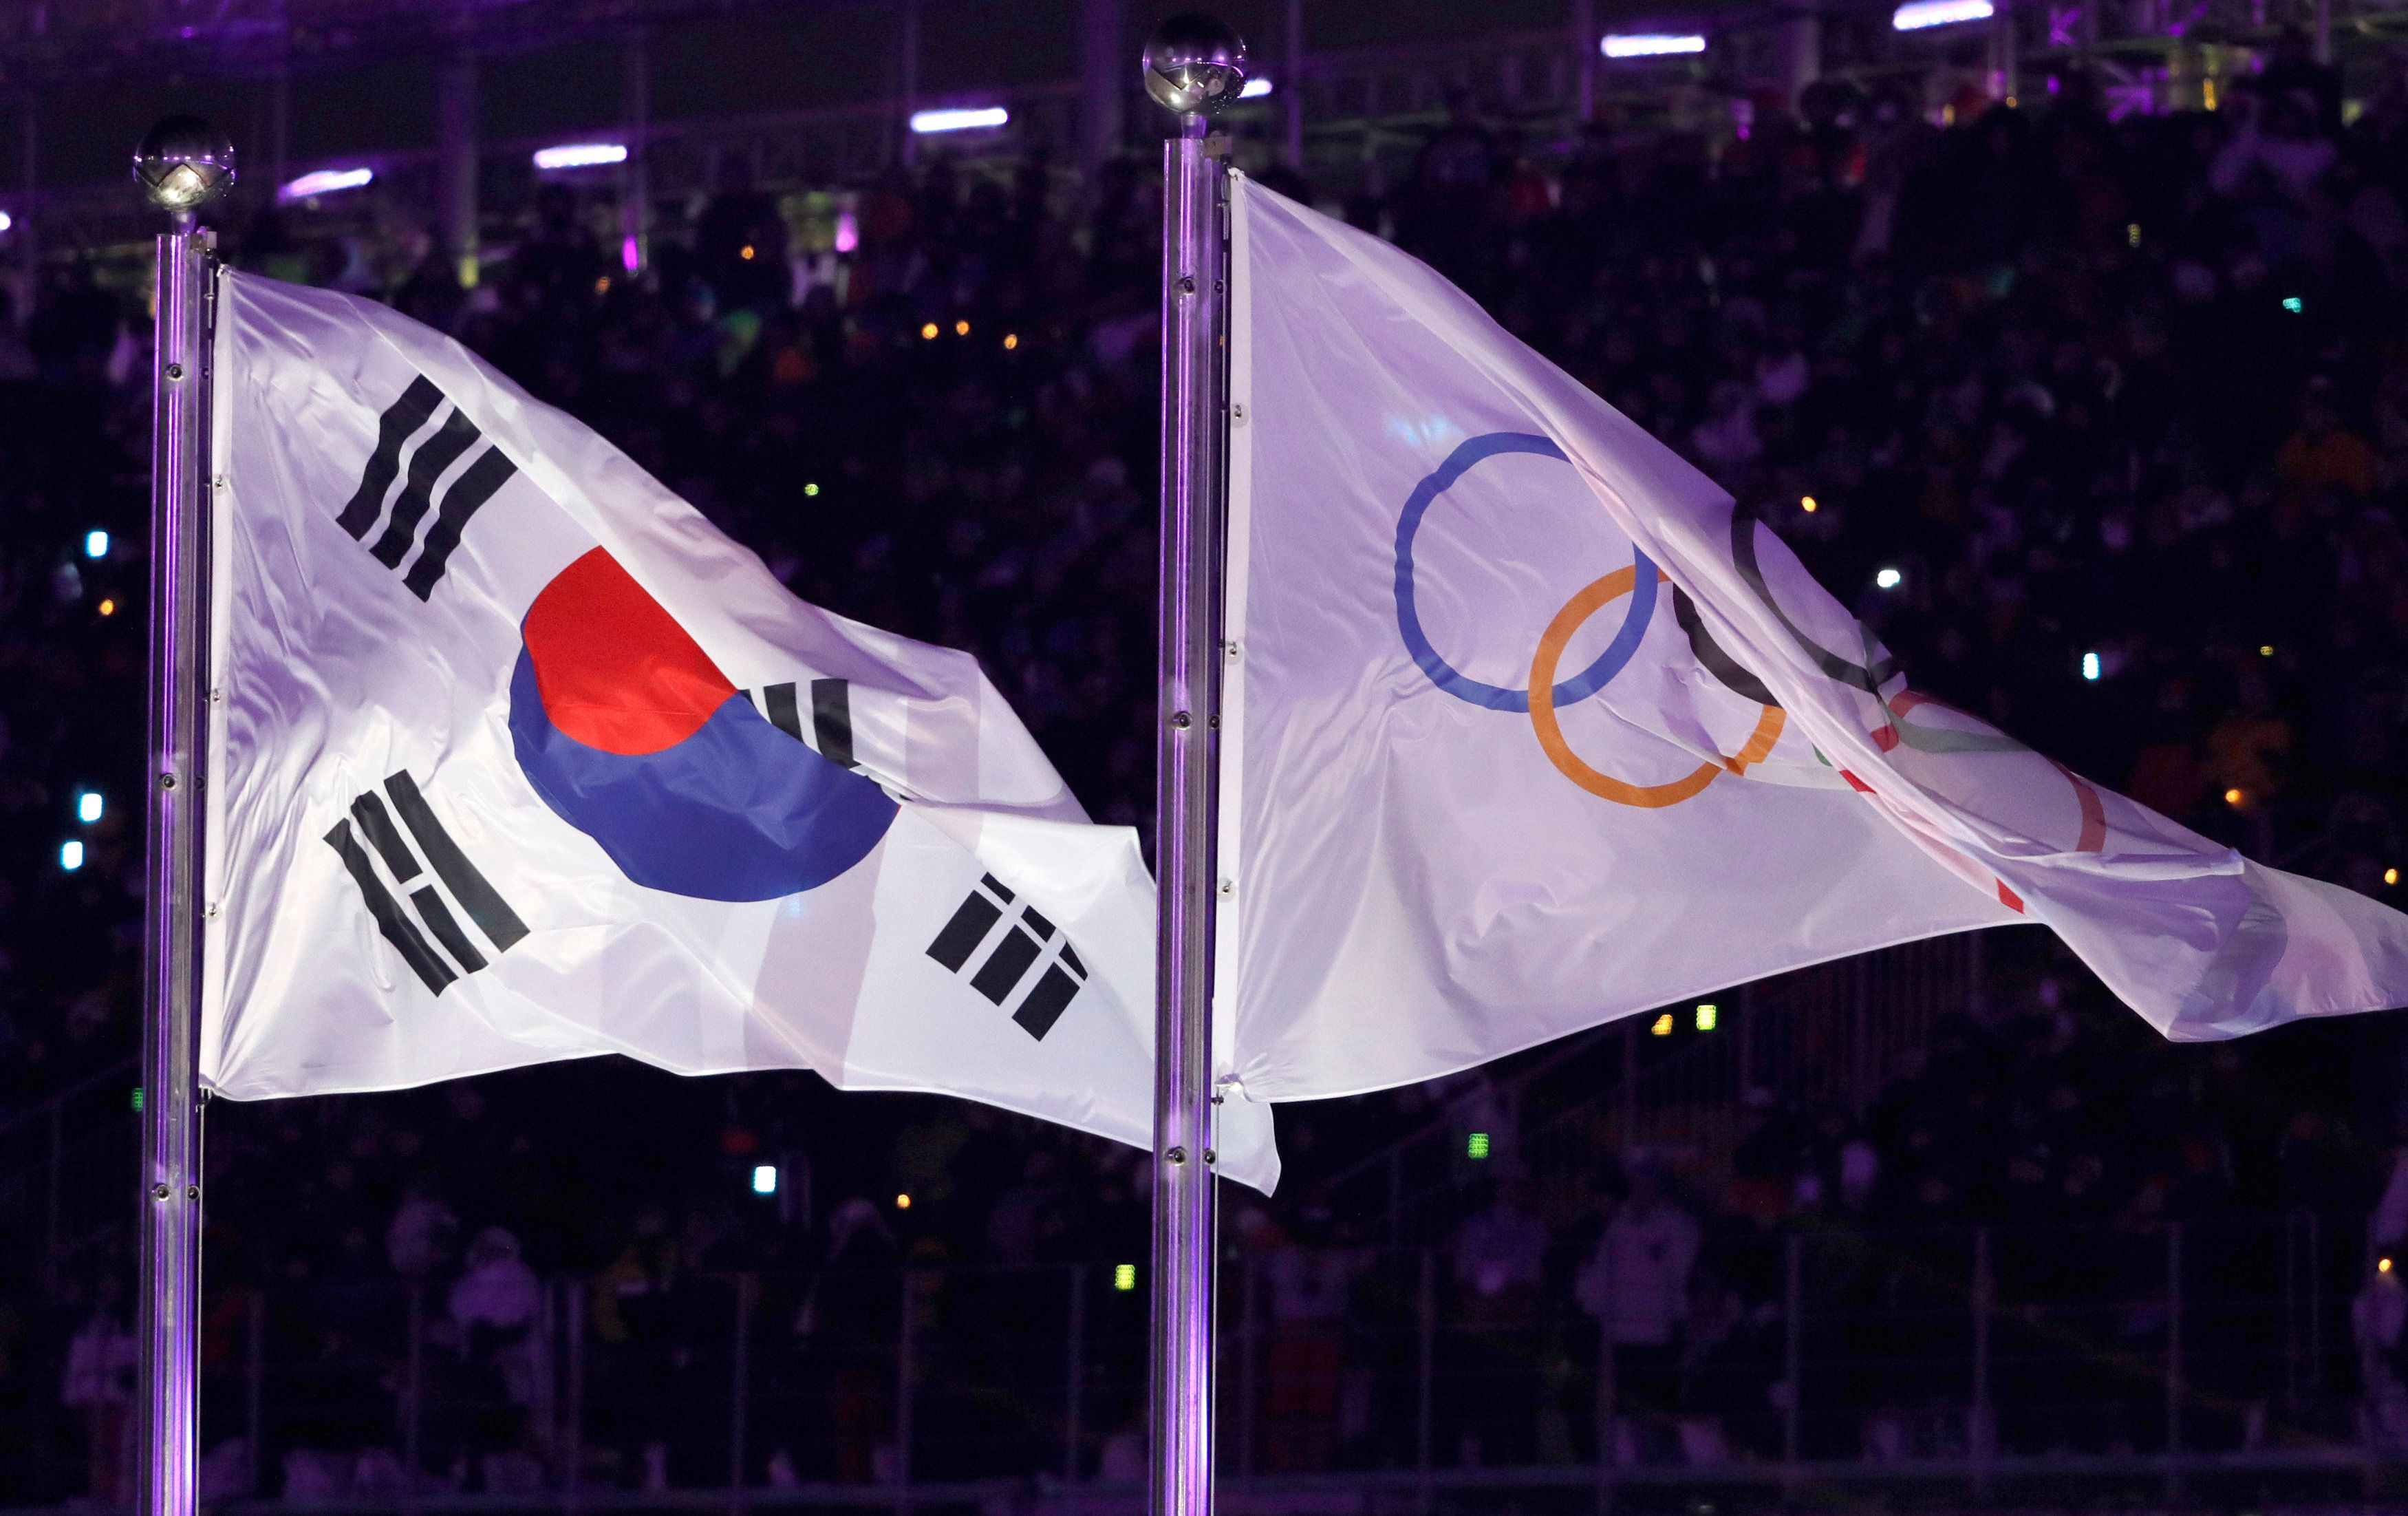 Pyeongchang 2018 Winter Olympics – Opening ceremony – Pyeongchang Olympic Stadium - Pyeongchang, South Korea – February 9, 2018 - South Korea's and Olympic flags flutter during the opening ceremony. REUTERS/Kim Kyung-Hoon